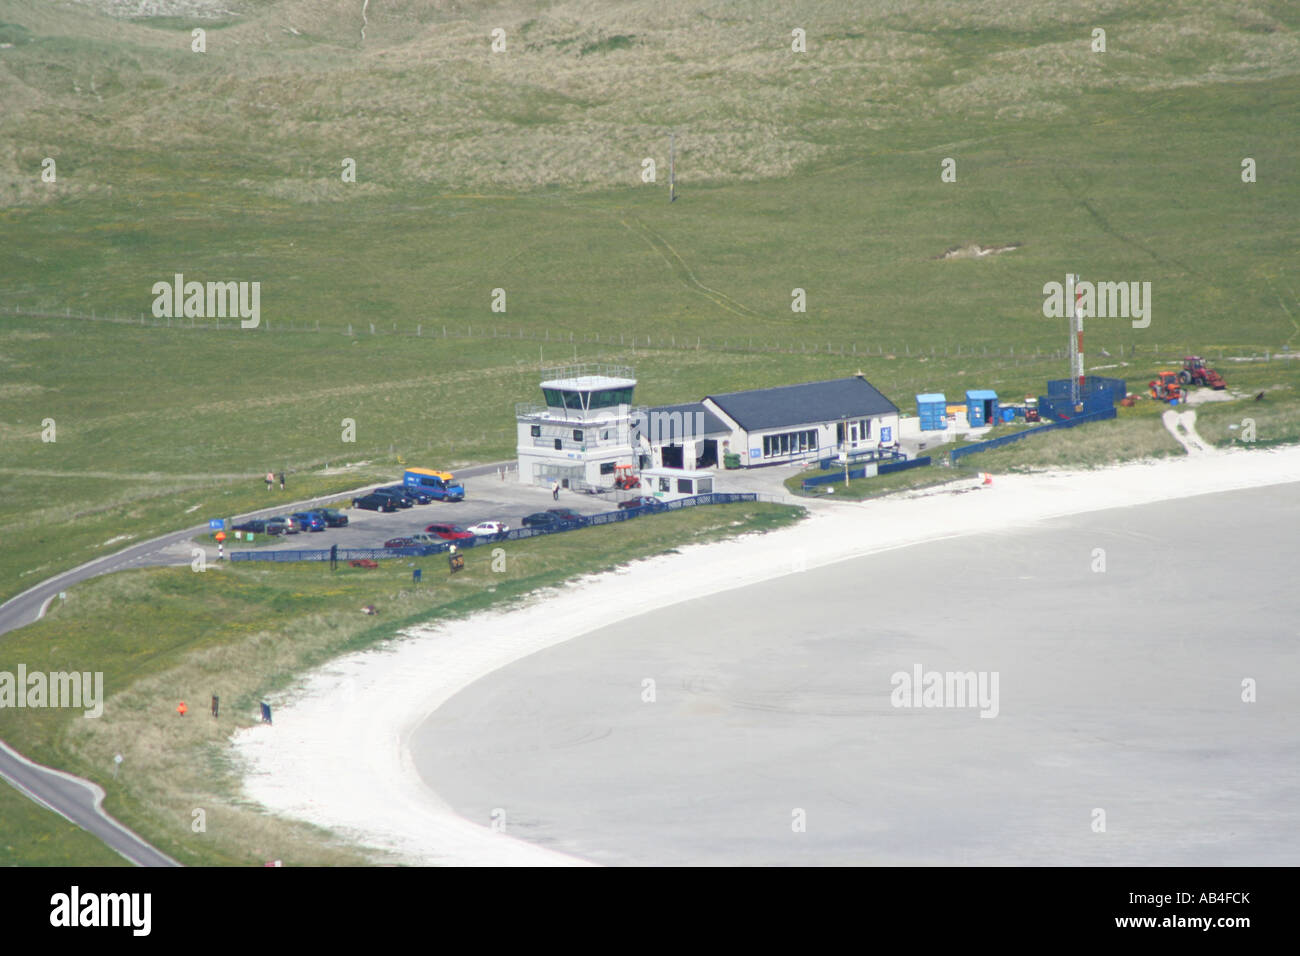 aerial view of Barra airport Isle of Barra Outer Hebrides Scotland  June 2007 - Stock Image